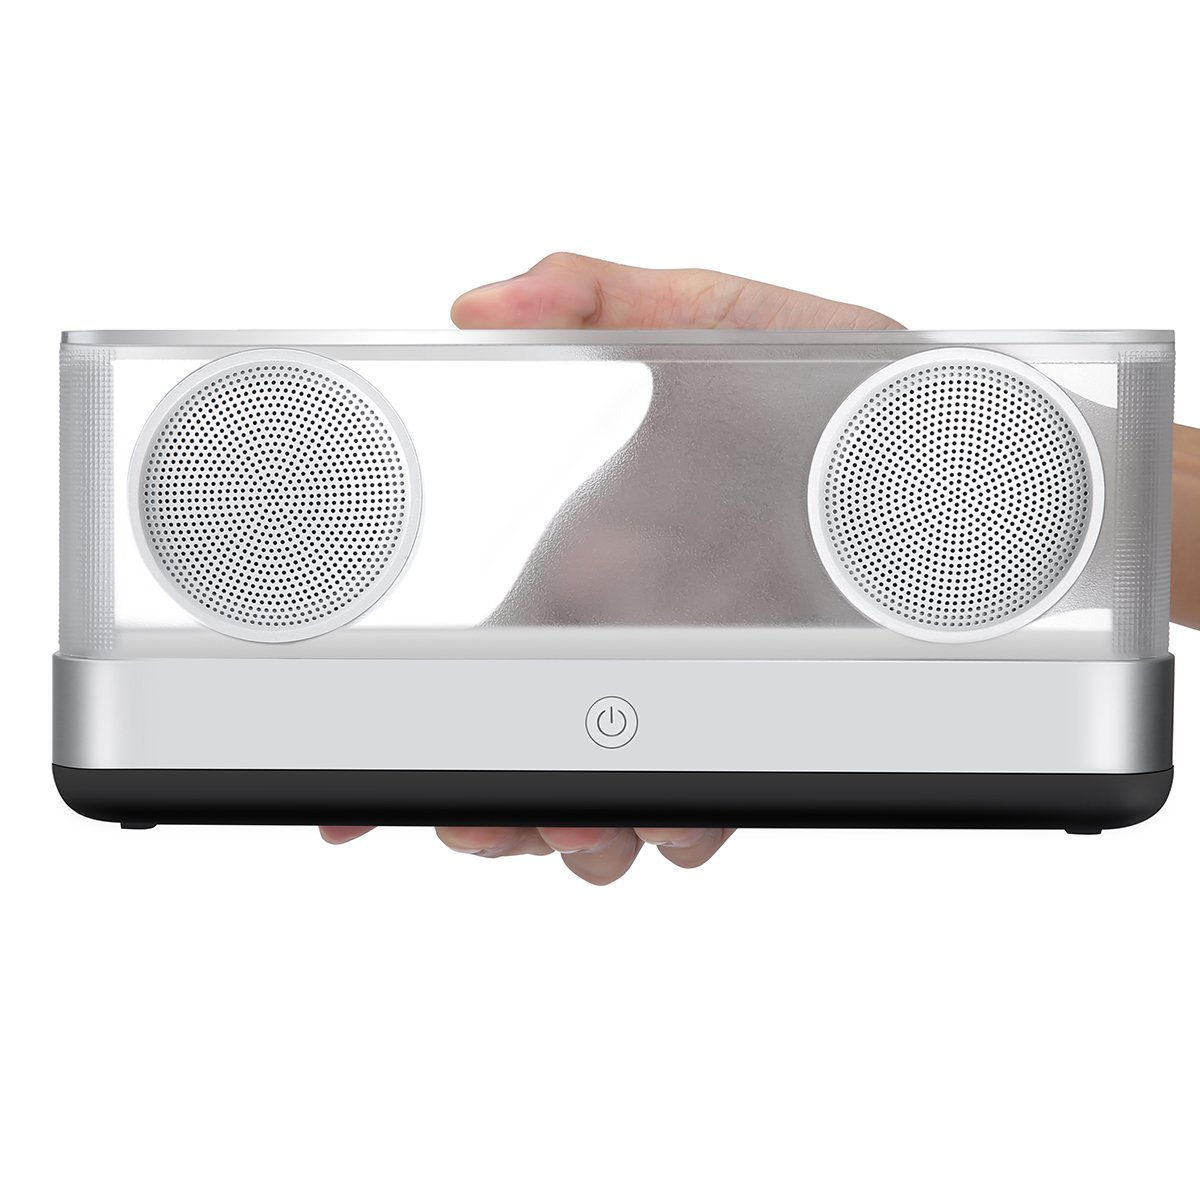 Portable Bluetooth Speaker, ELEGIANT Wireless Stereo Sound Speakers 20W LED Outdoor DSP Stereo Sound Super Bass 12 Hours Play Time for Car iPhone iPad Samsung S8/S9 Tablet PC